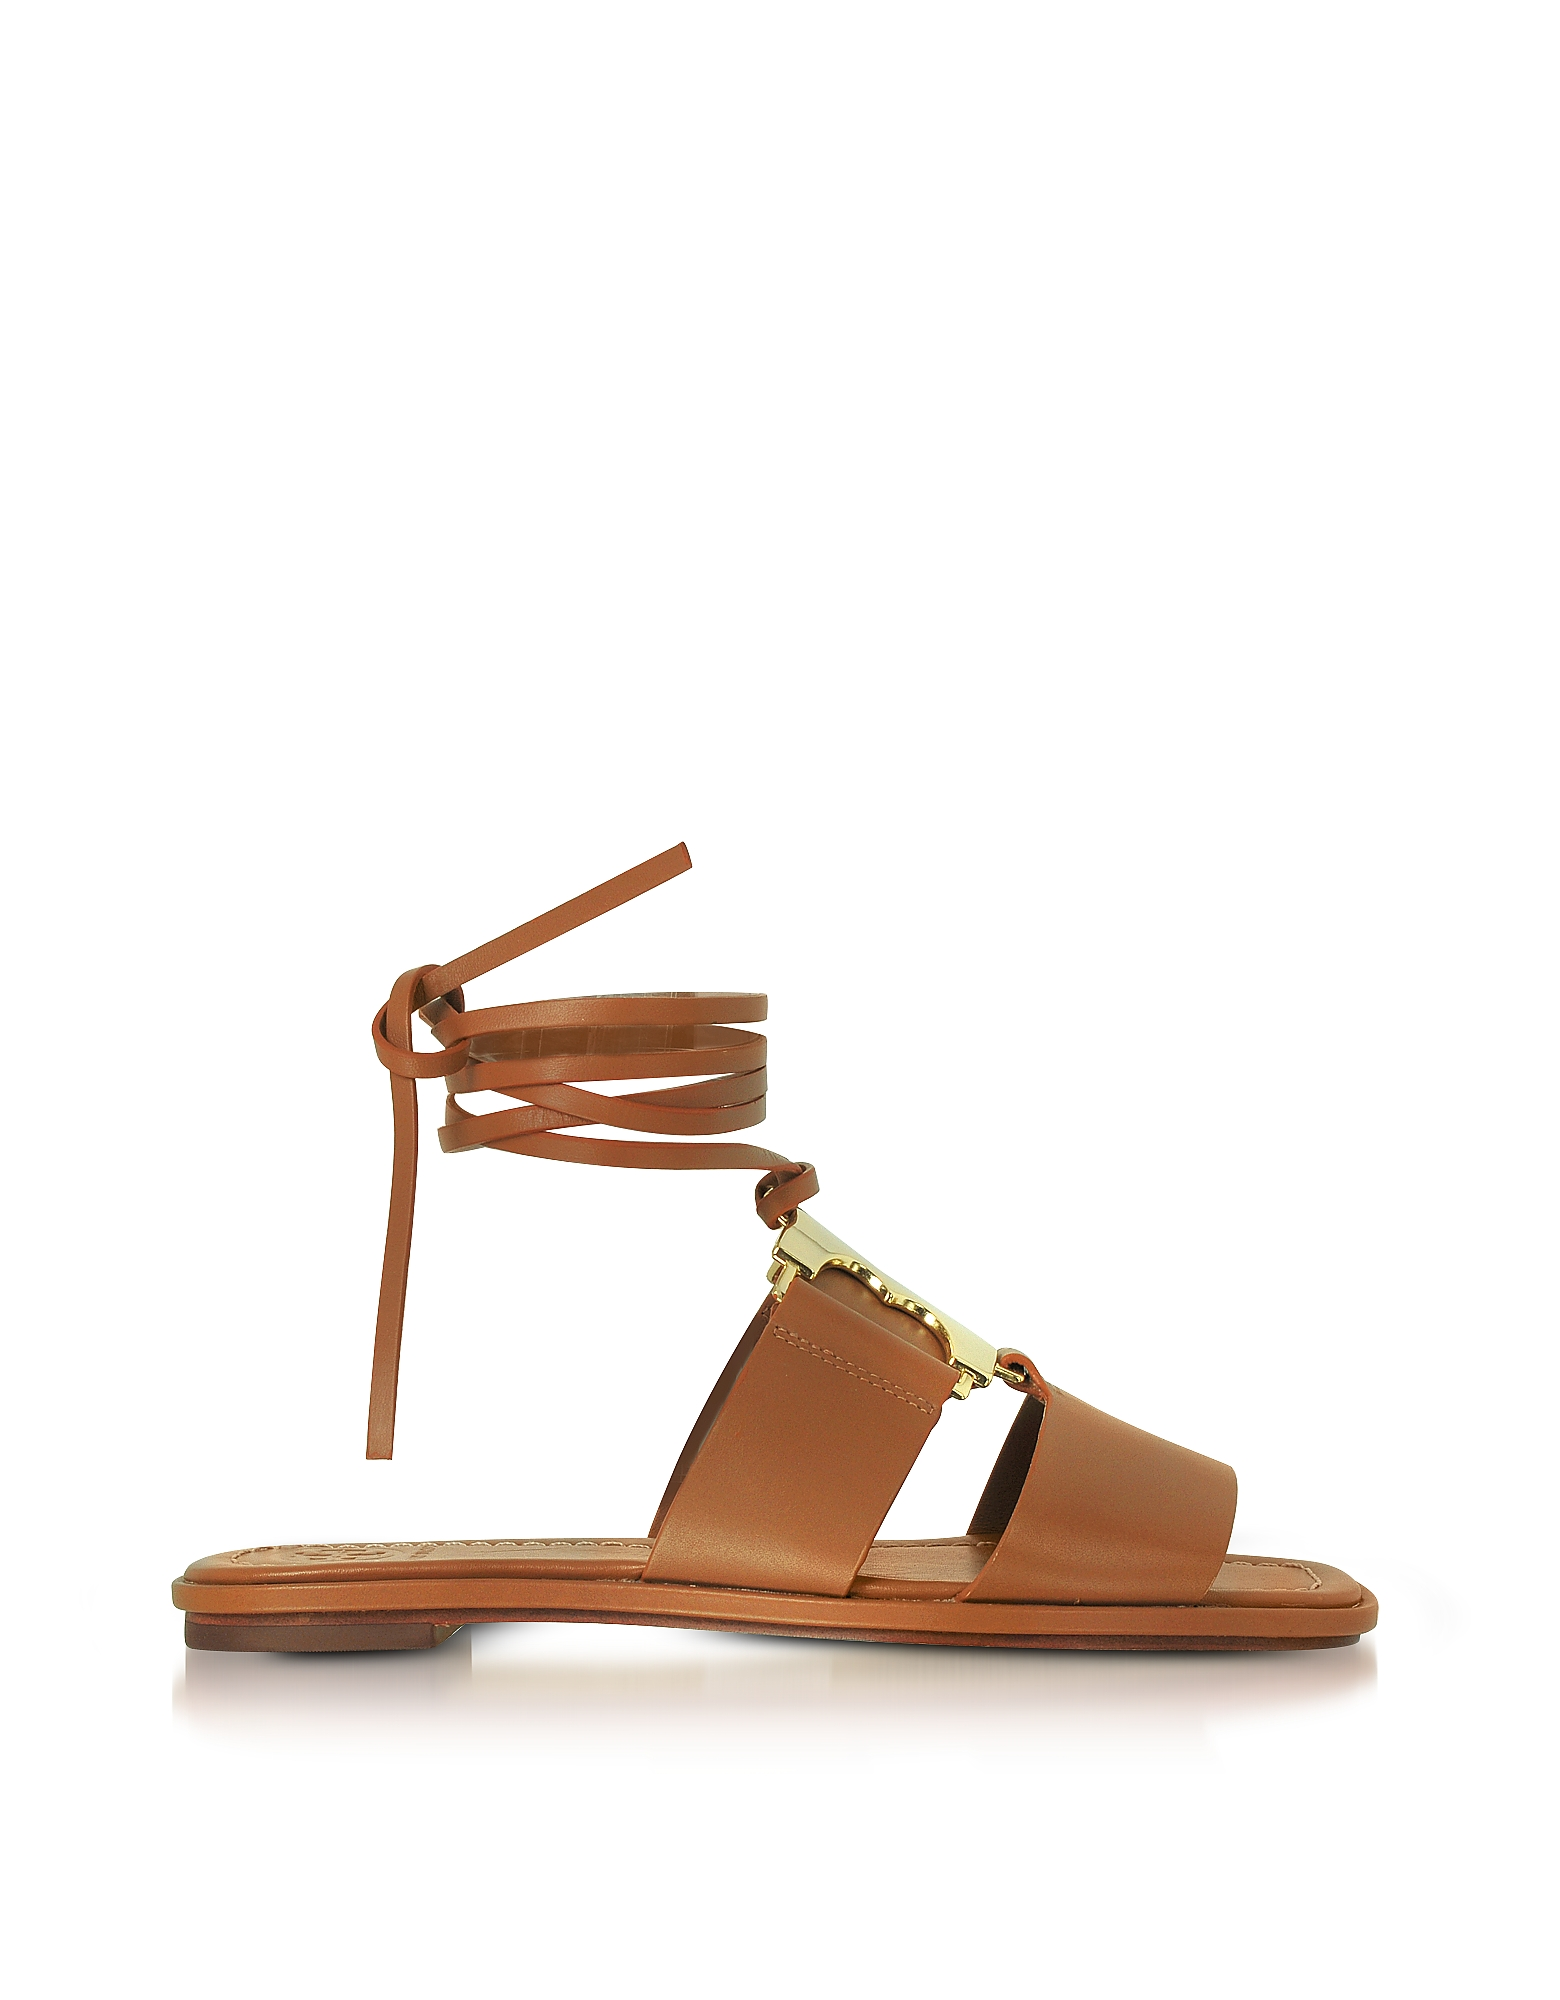 Tory Burch Shoes, Gemini Link Royal Tan Nappa Leather Lace Up Flat Sandals